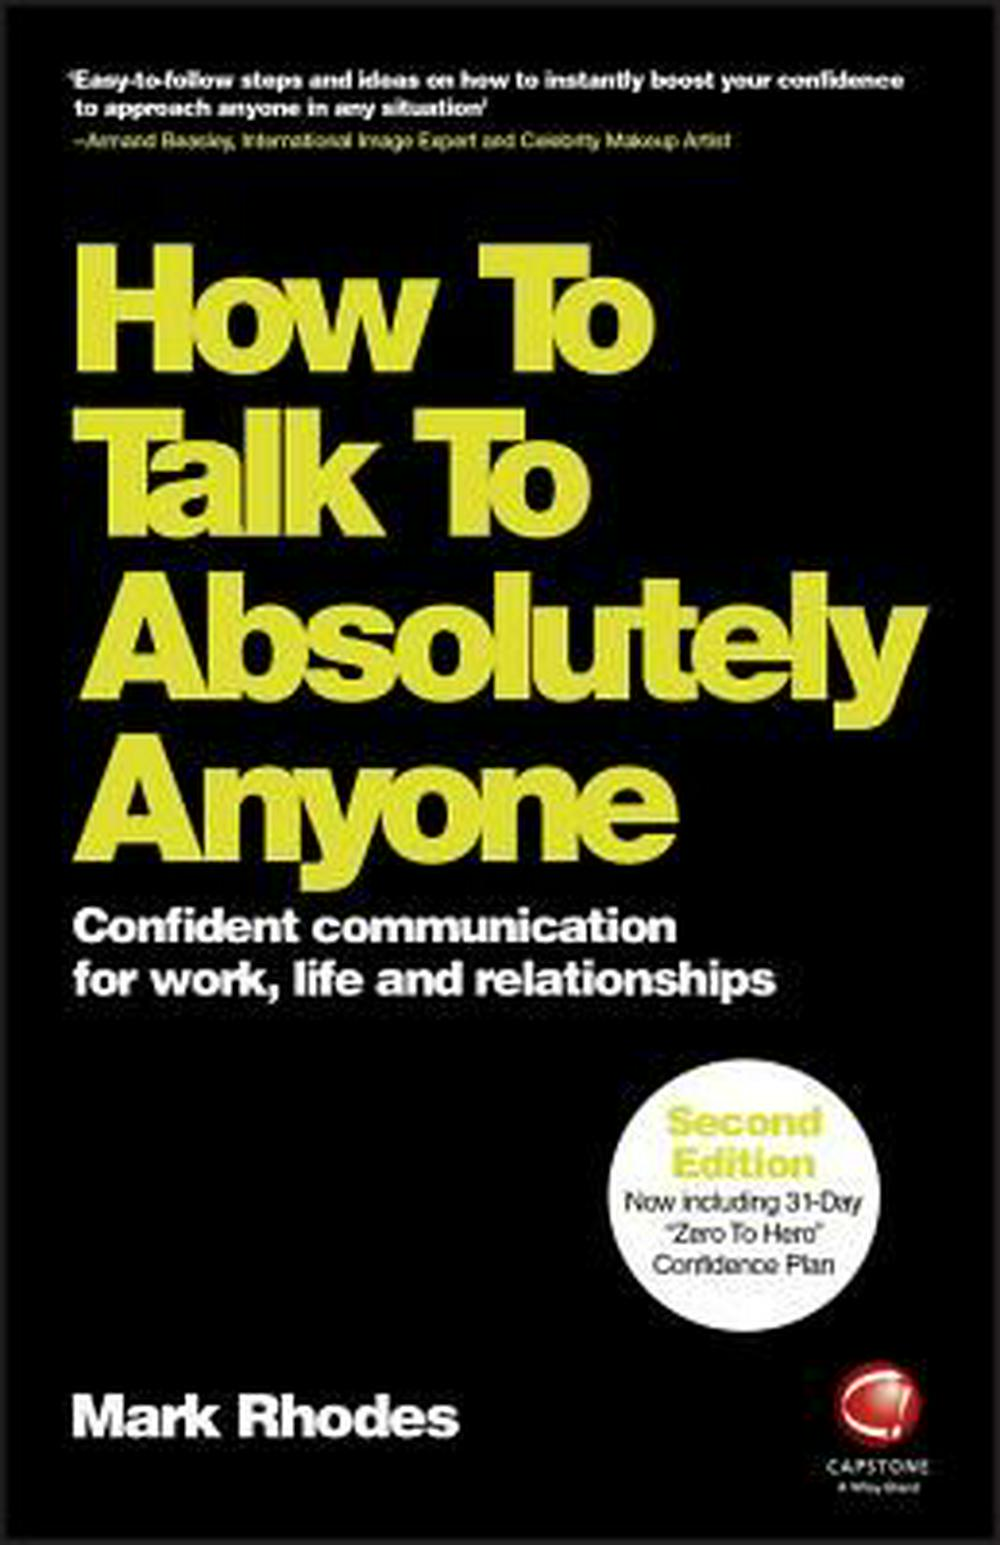 How to Talk to Absolutely Anyone - Confident Communication in Every Situation 2E